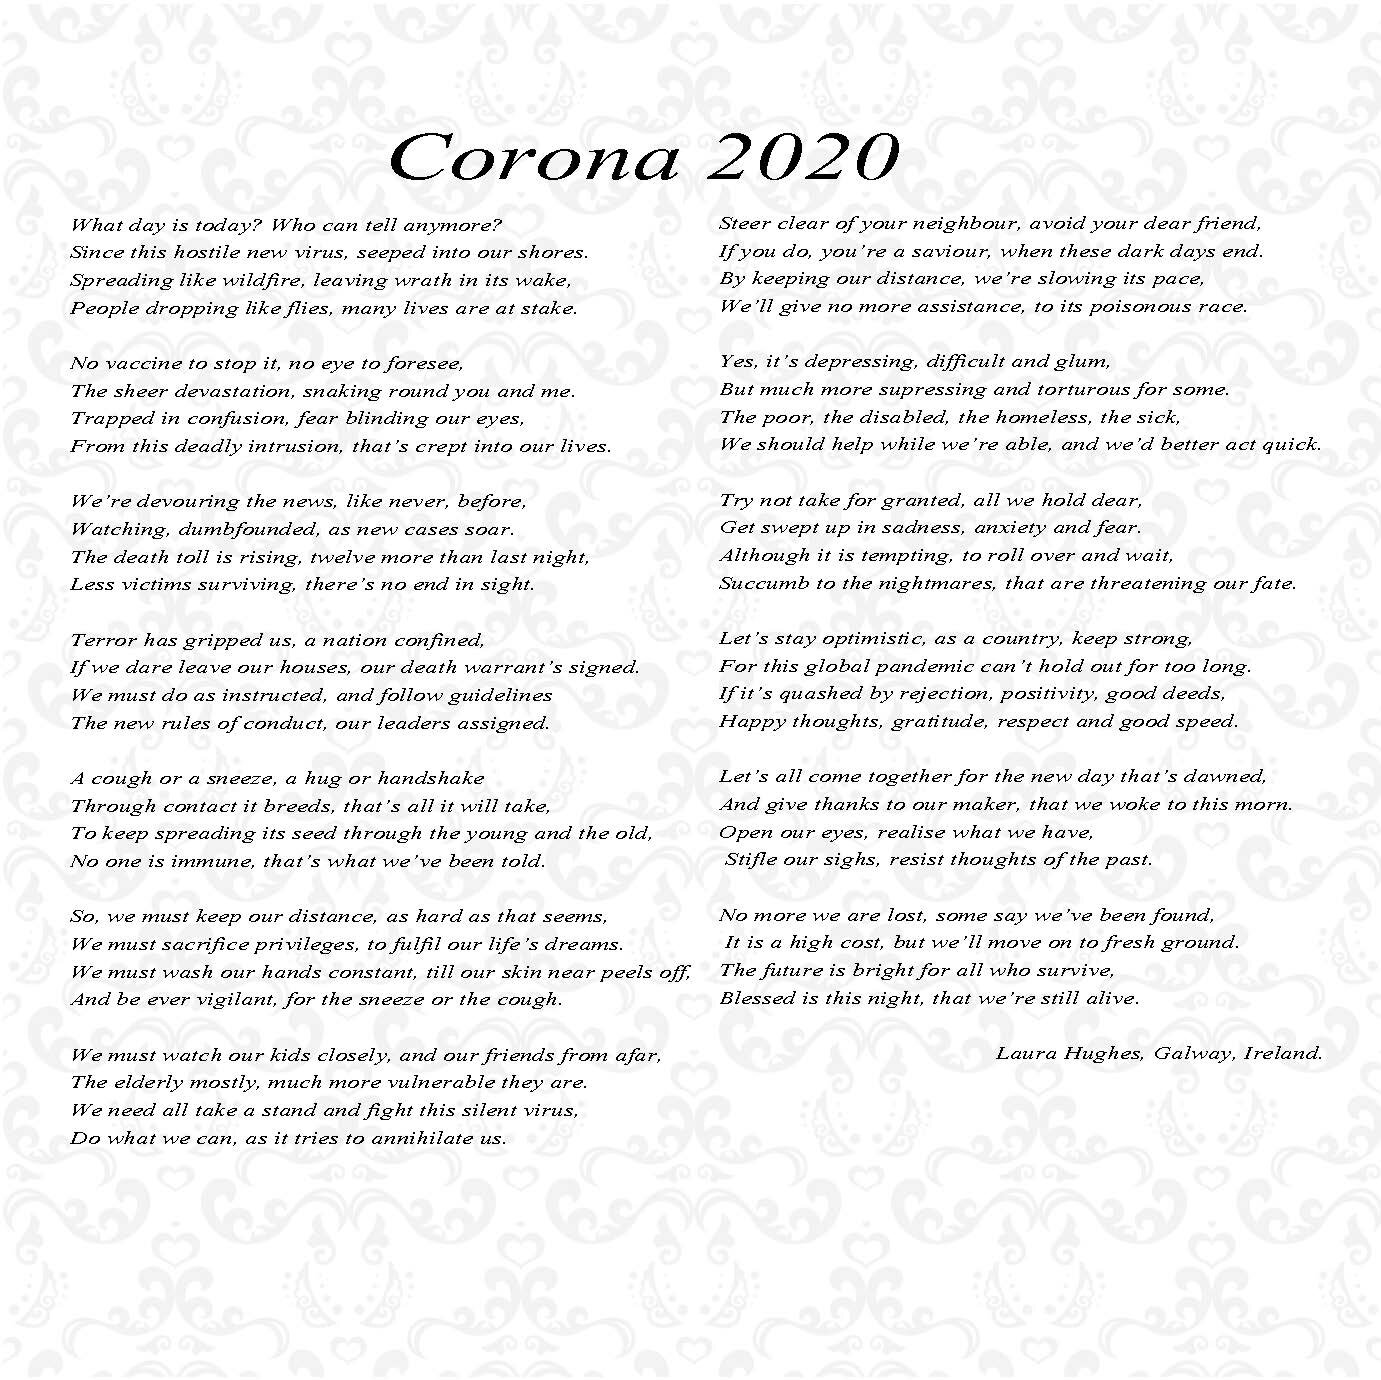 A Poem Corona 2020 Ability West A poet who went viral with his poem about how coronavirus could ultimately make the world a better but, halfway through the poem, he says that the occurrence of the coronavirus in 2020 changed. a poem corona 2020 ability west